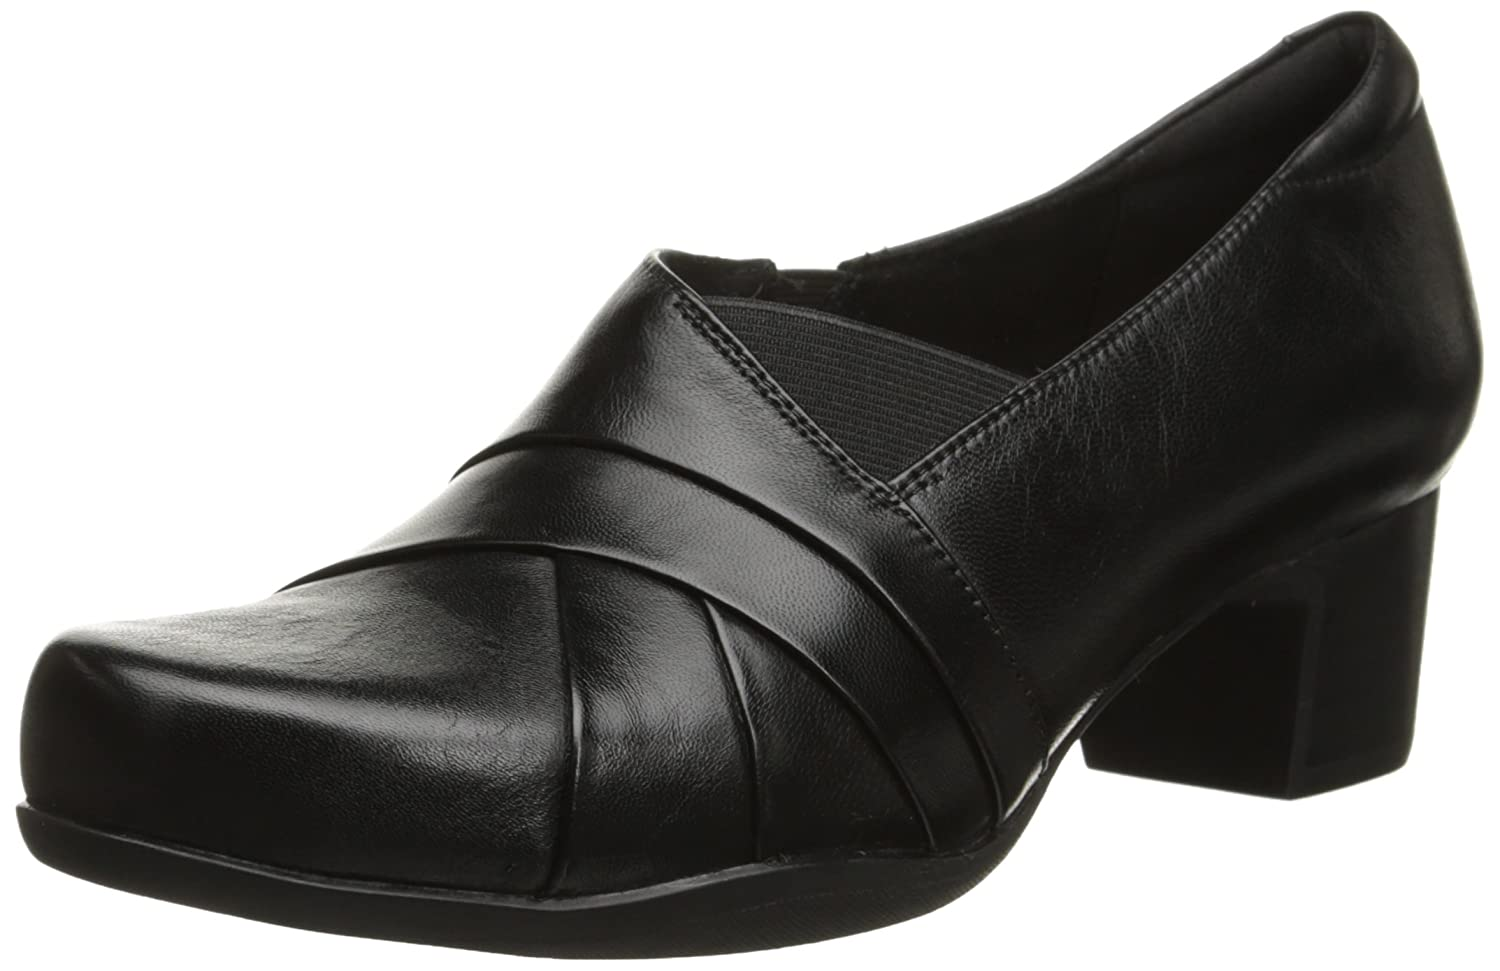 24bec4540b5a Clarks Women s Rosalyn Adele Dress Pump  Buy Online at Low Prices in India  - Amazon.in